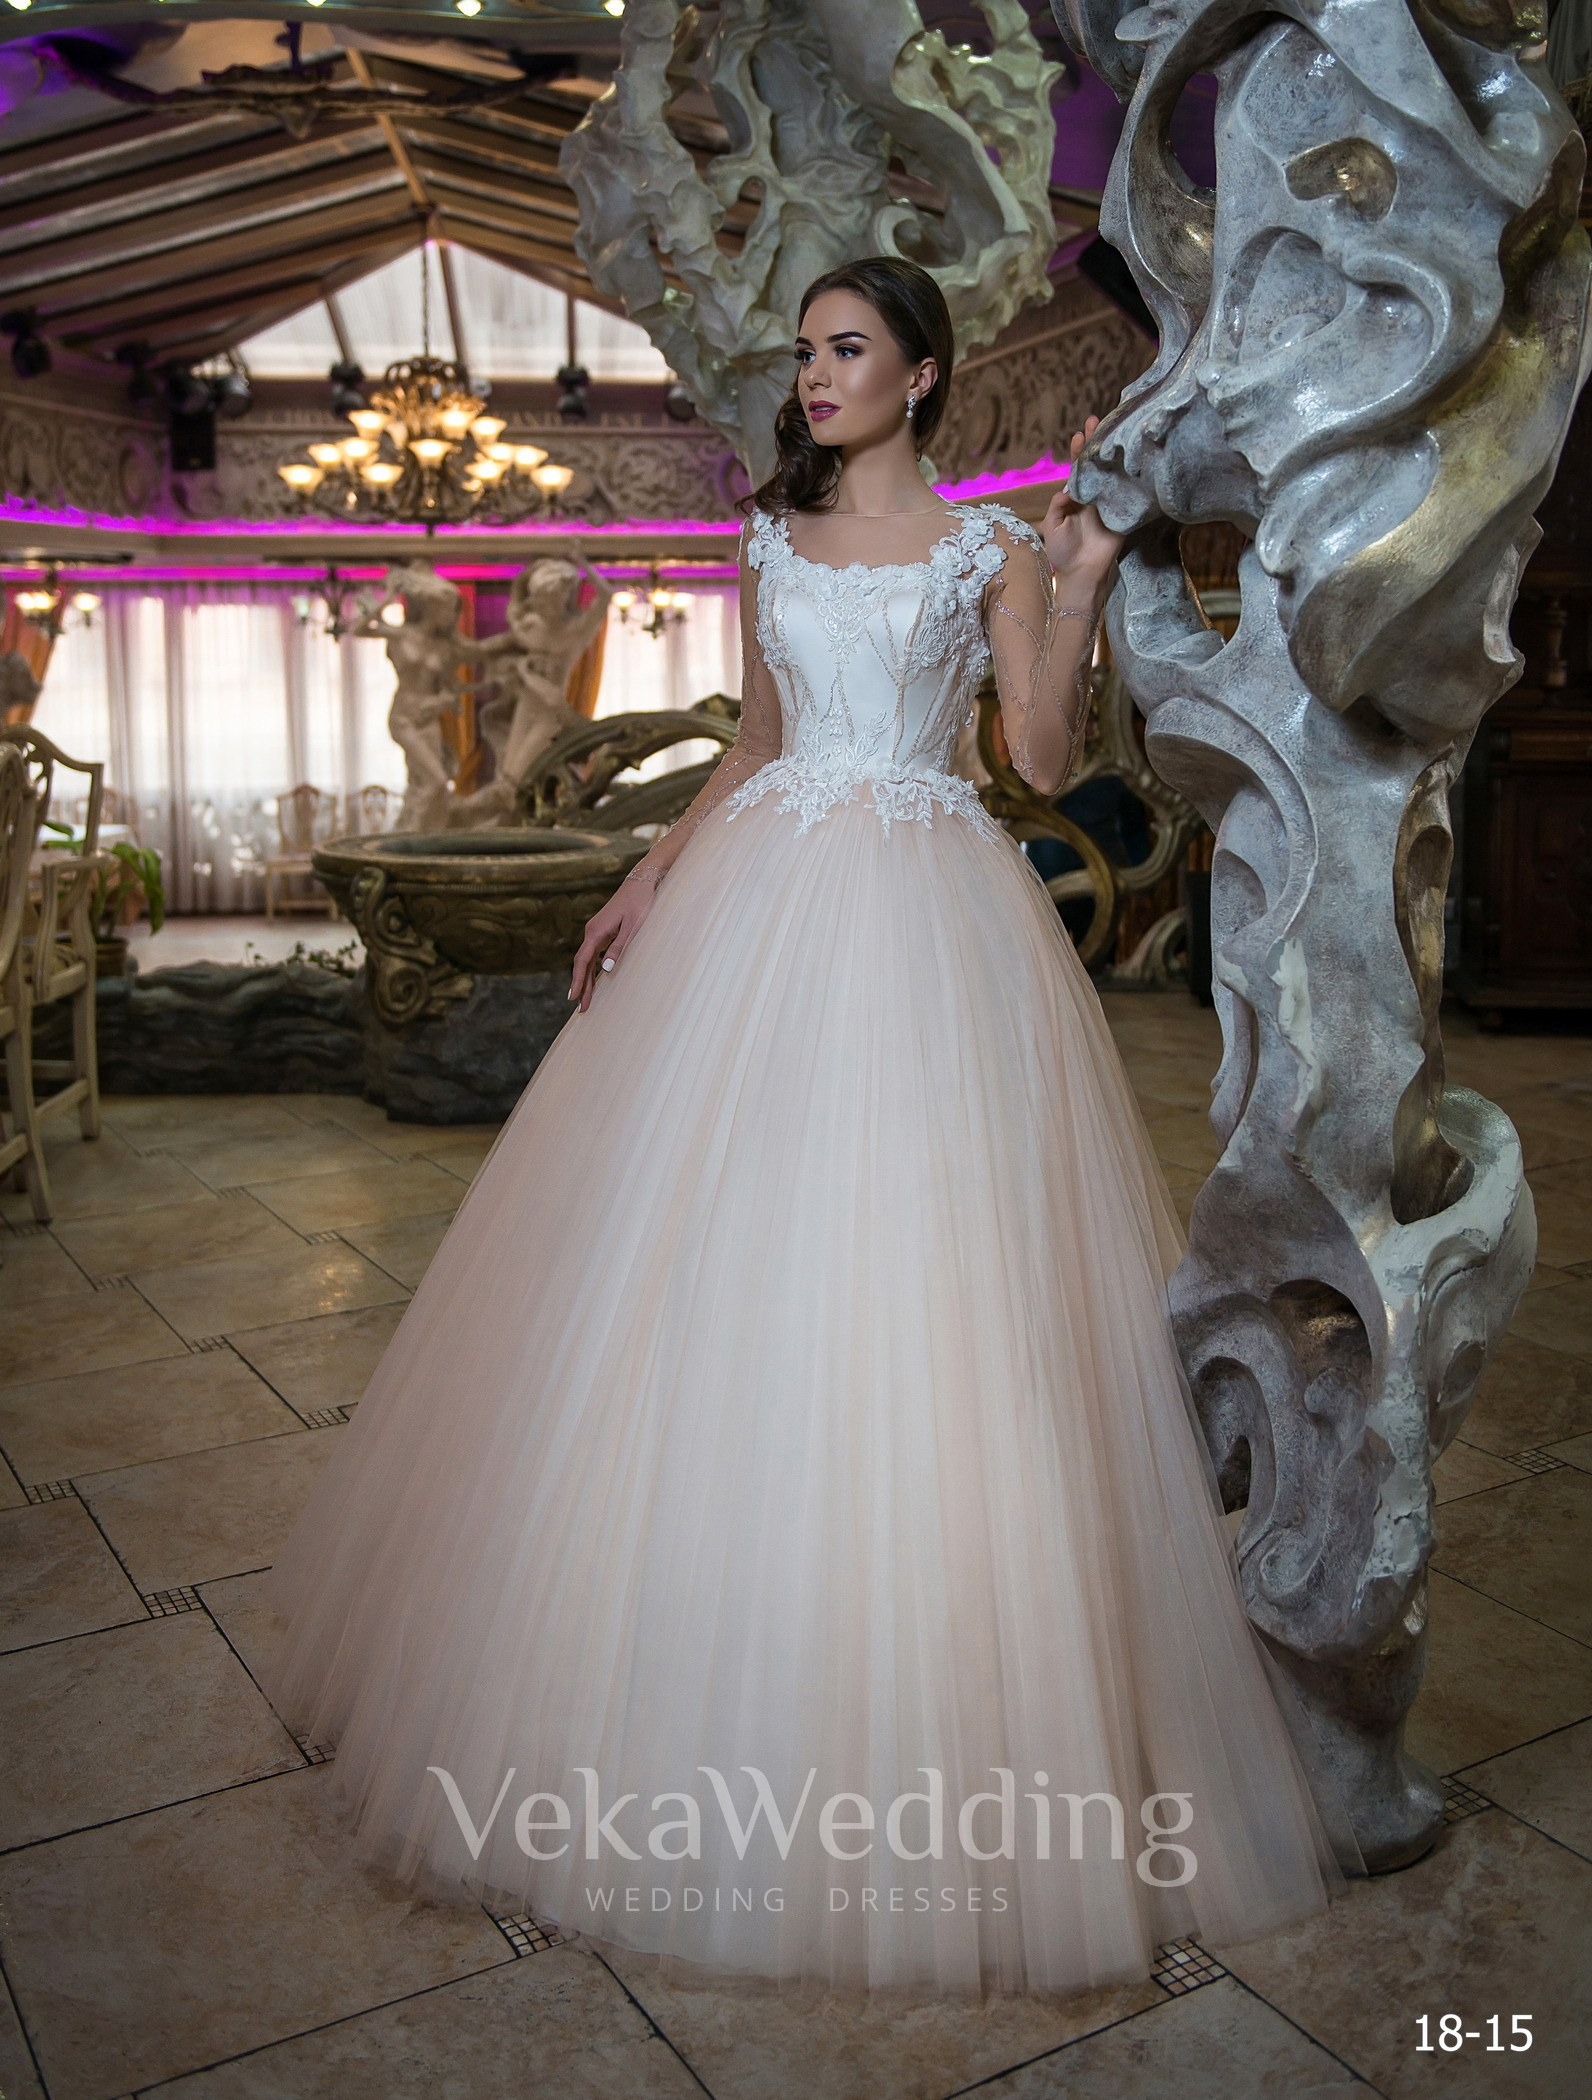 https://vekawedding.com/images/stories/virtuemart/product/18-15-------(1).jpg